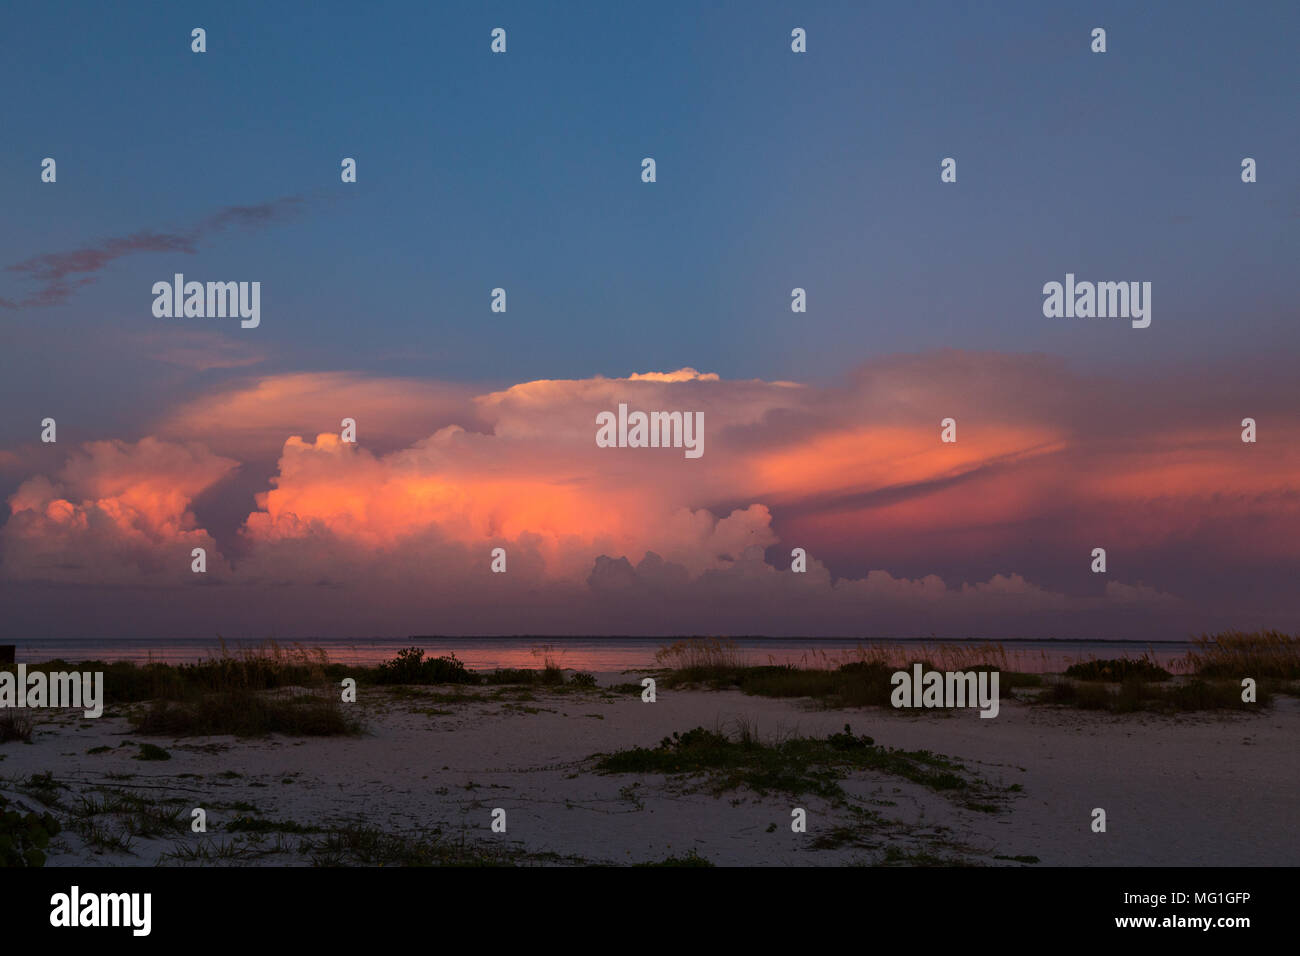 Distant thunderstorms over water during sunset, Boca Grande FL - Stock Image